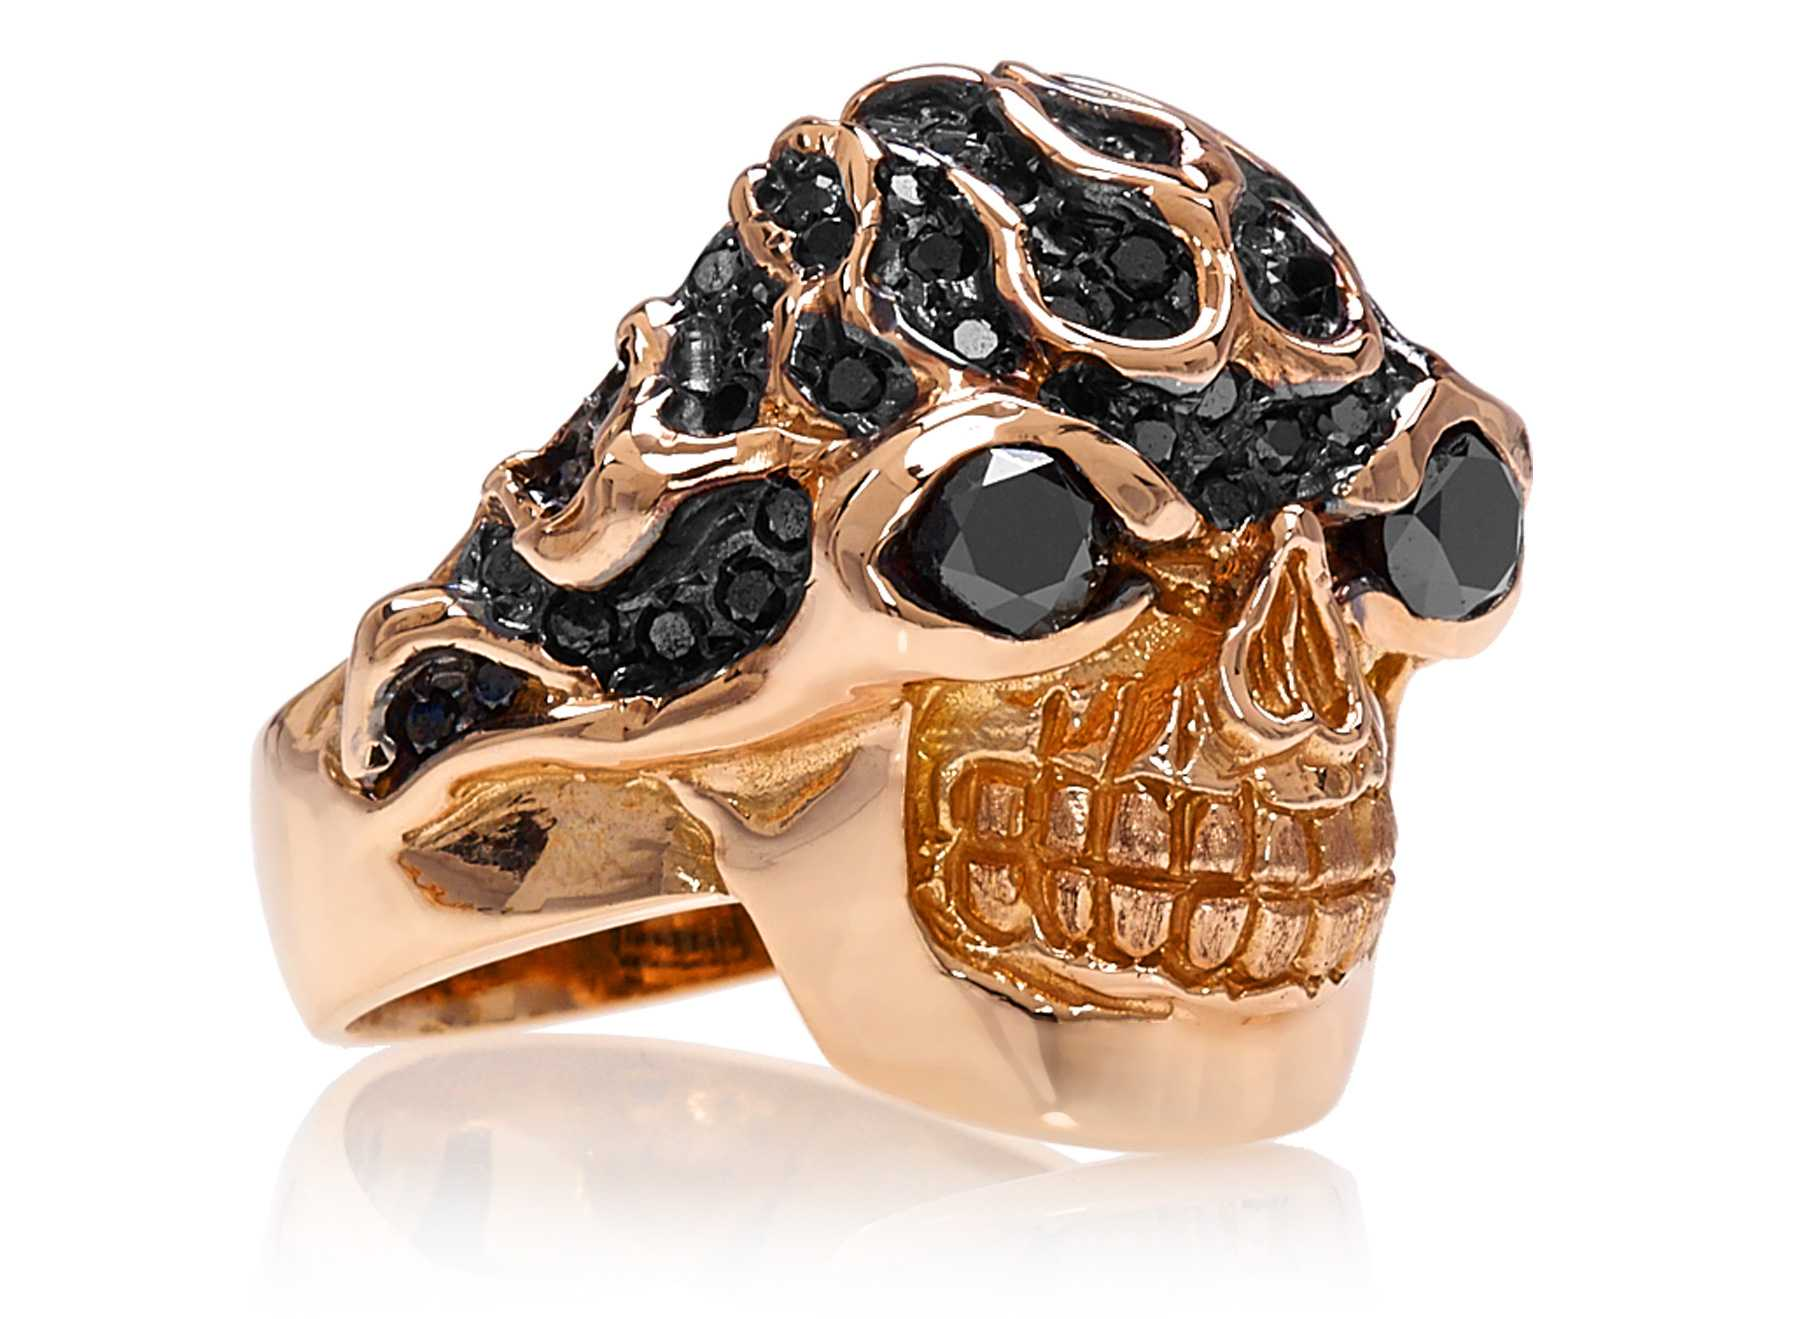 RG3022RG-A Blazing Bruno Skull Ring (Front Side View) in Rose Gold with Black Diamonds, designed by Steve Soffa